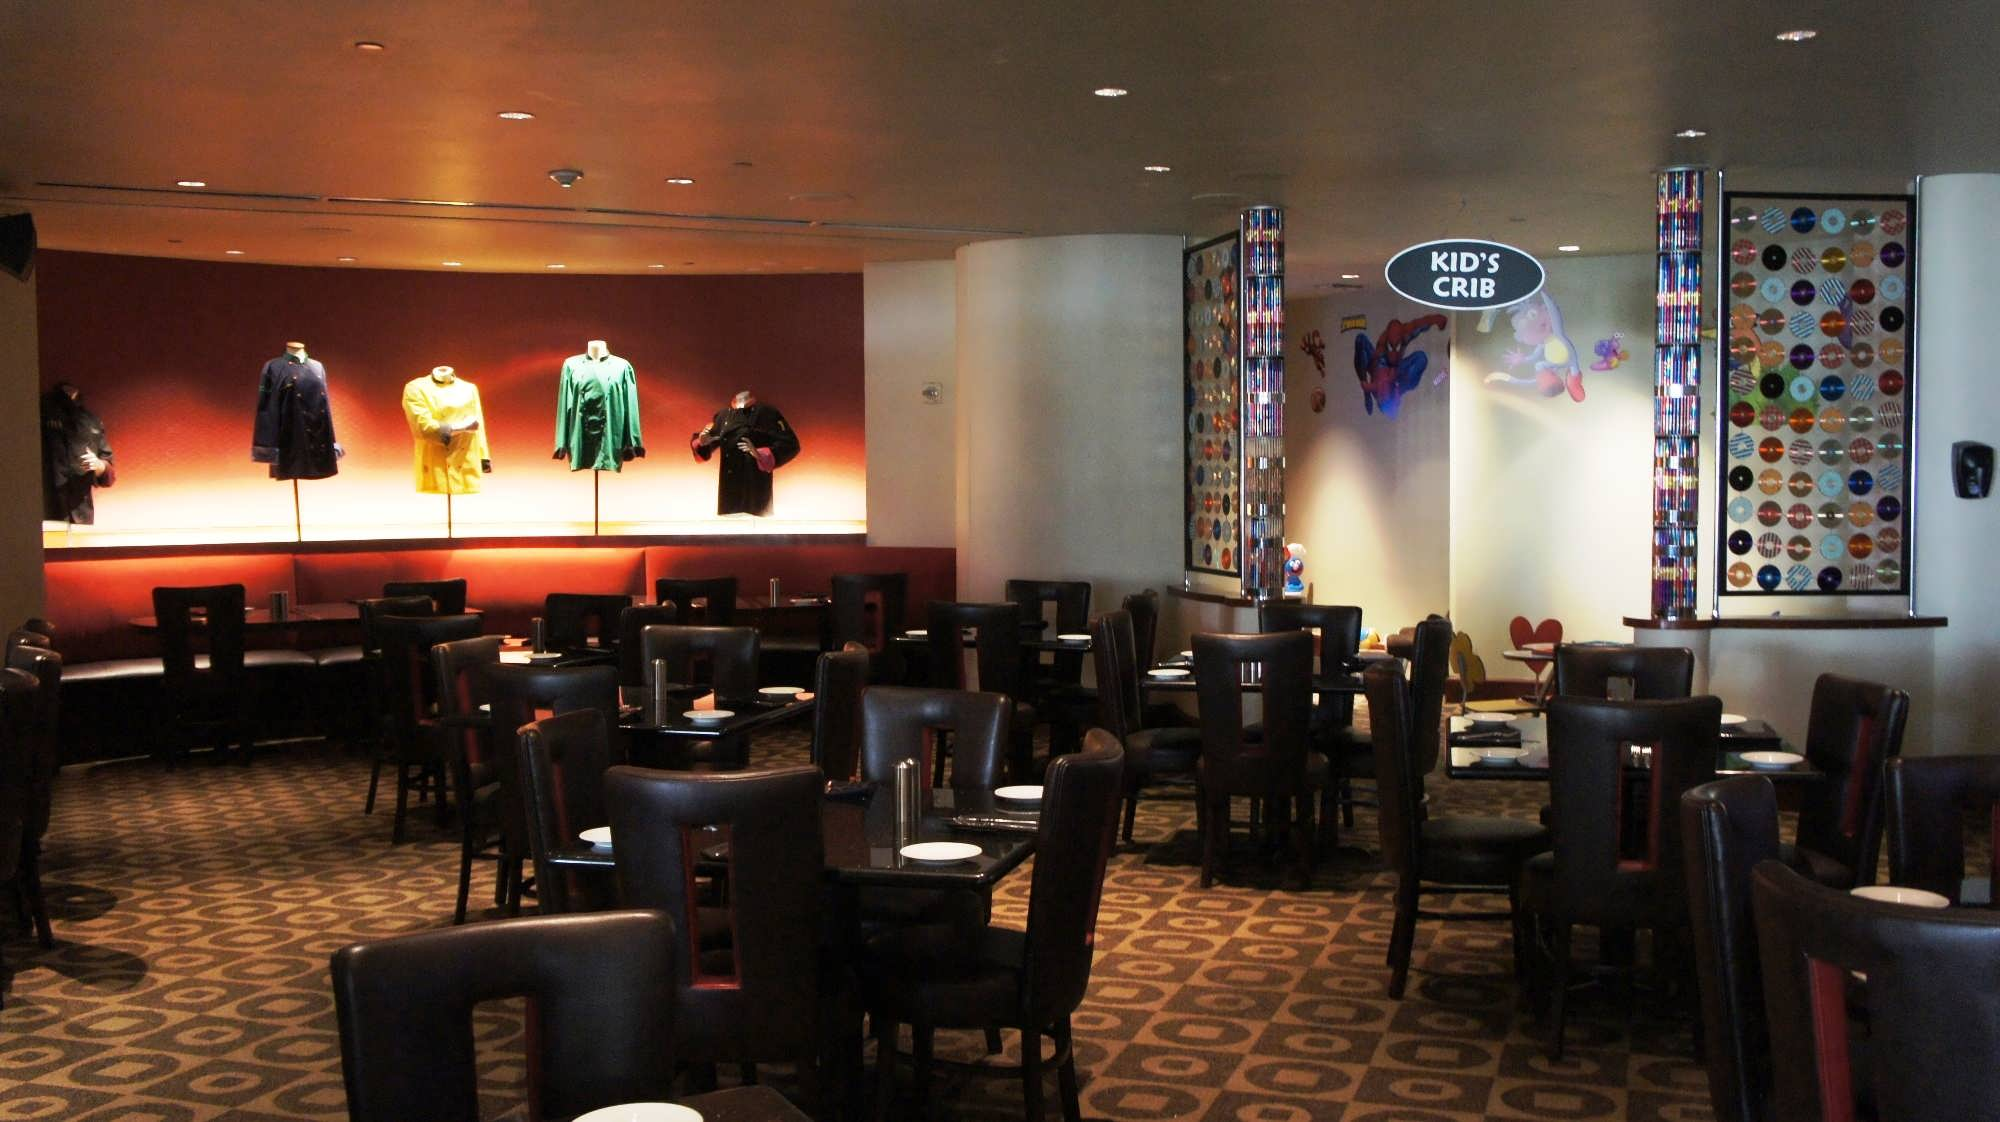 The Kitchen Restaurant at Hard Rock Hotel Orlando